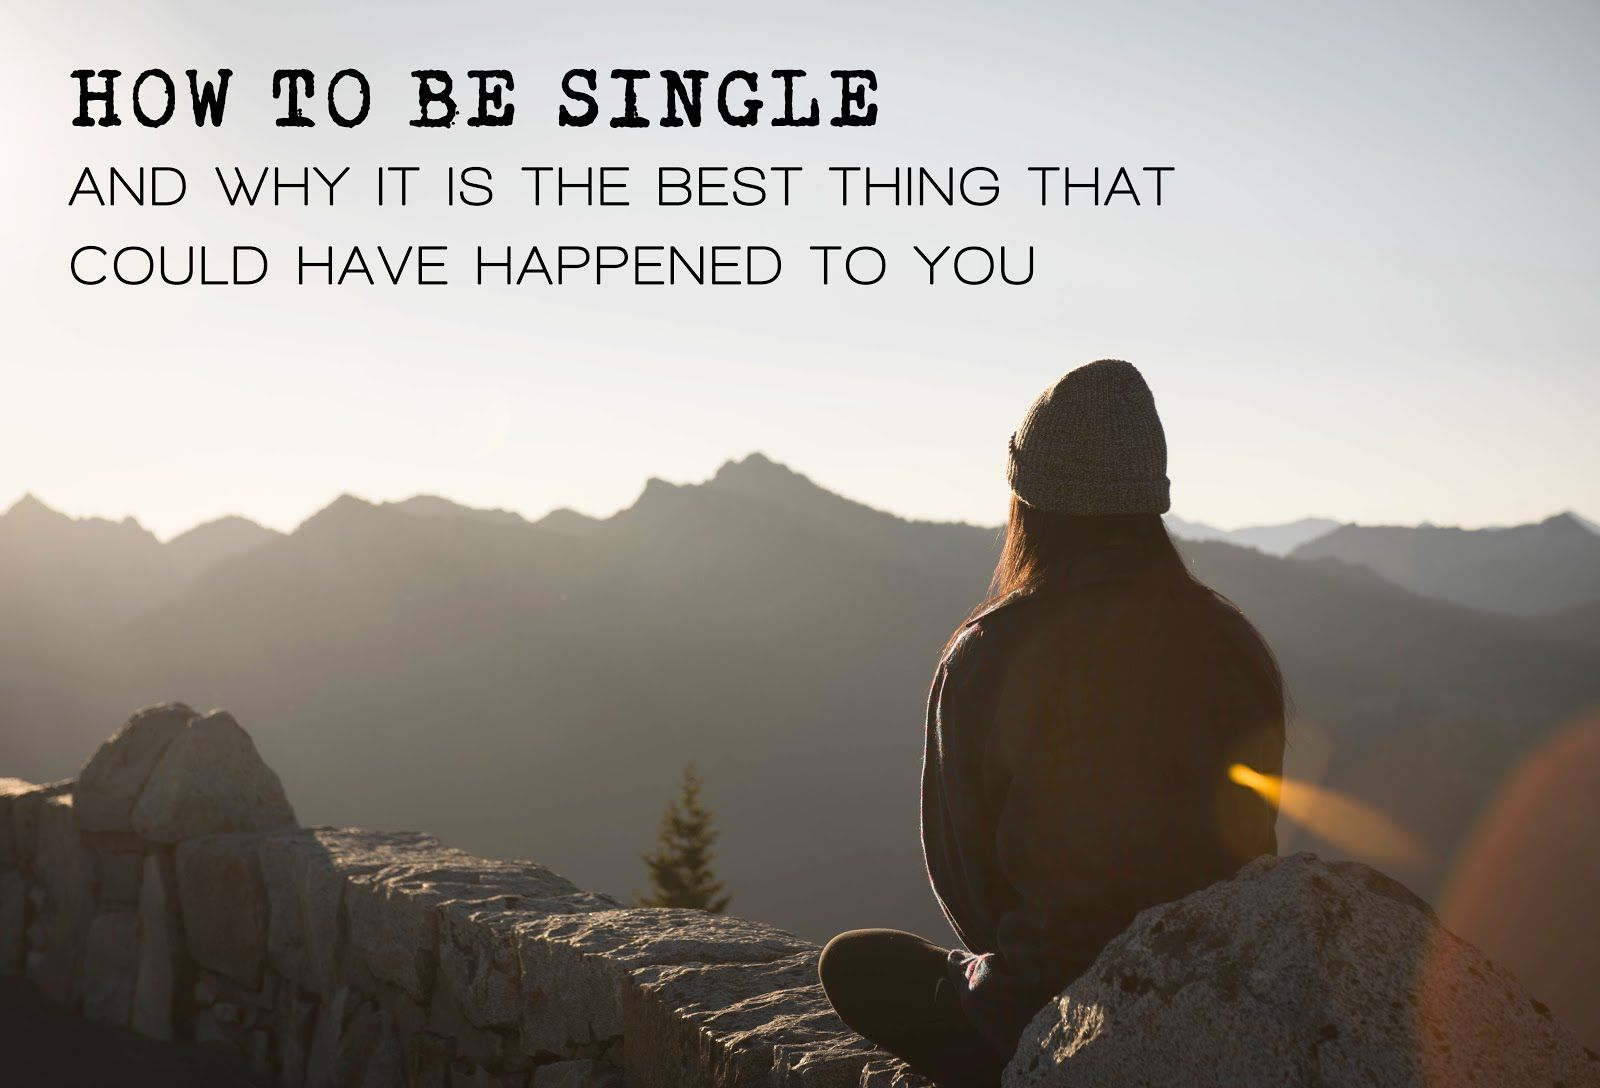 Get your daily dose of happiness how to be single and why it is the get your daily dose of happiness how to be single and why it is the best thing that could have happened to you single fabulous alone loneliness ccuart Gallery